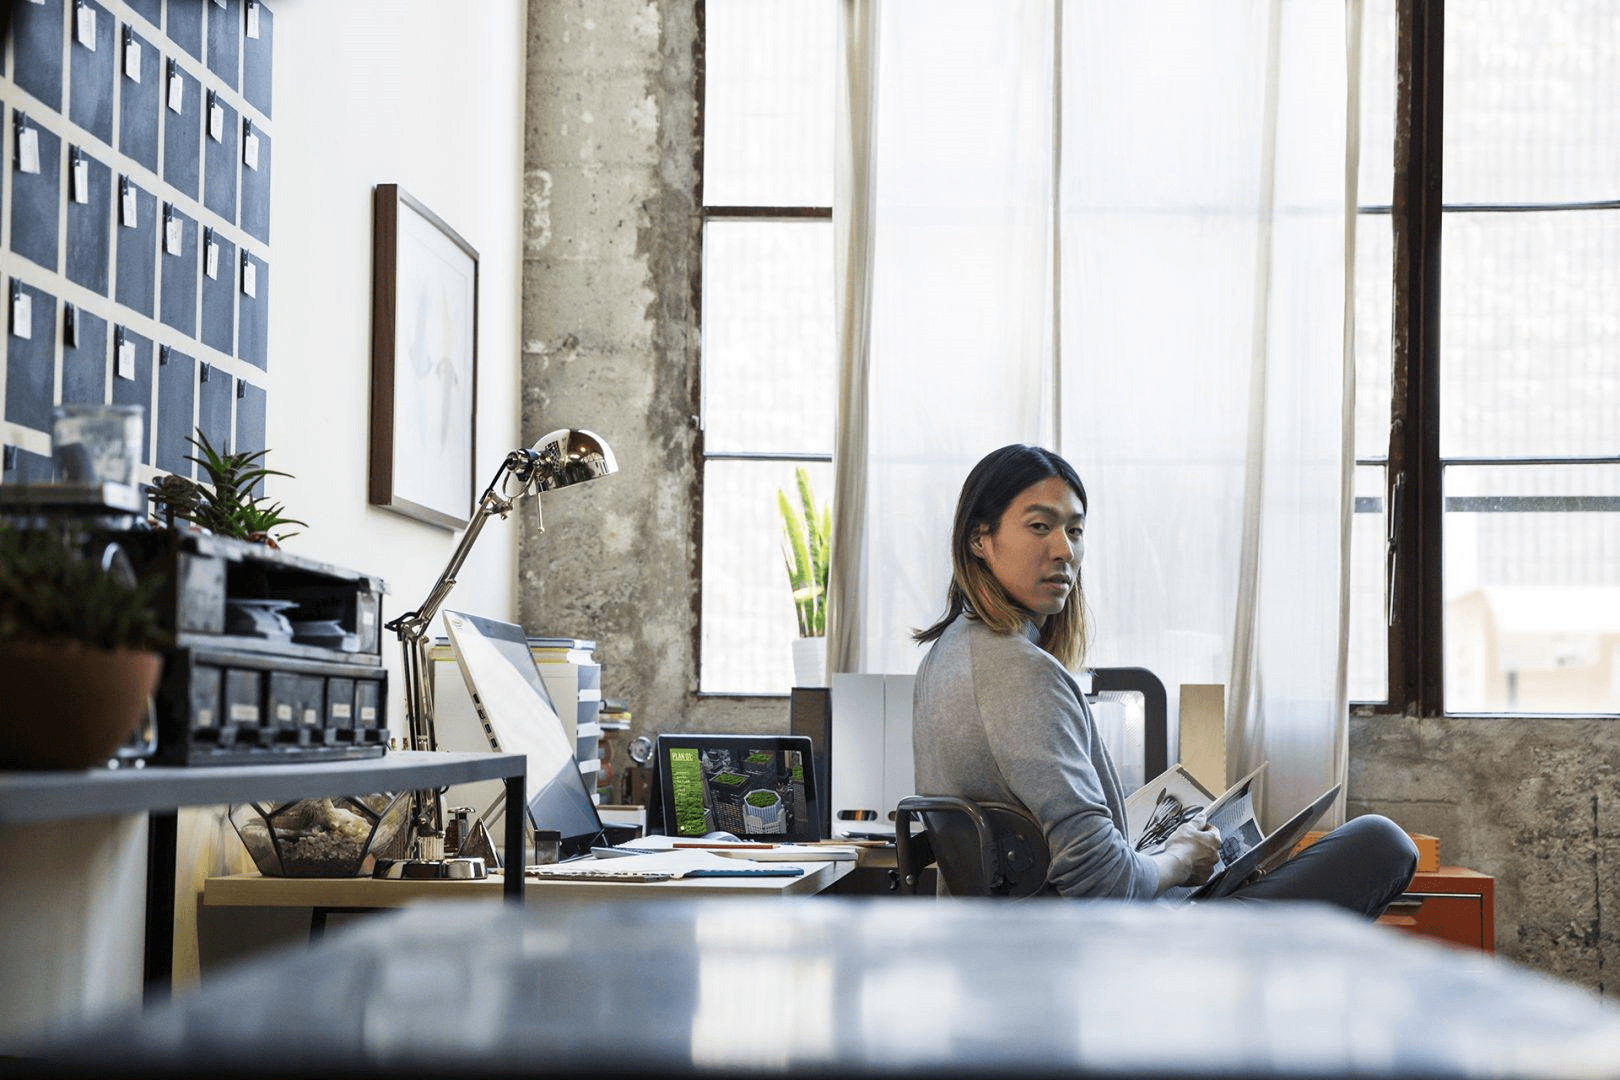 Employee at desk using workplace technology